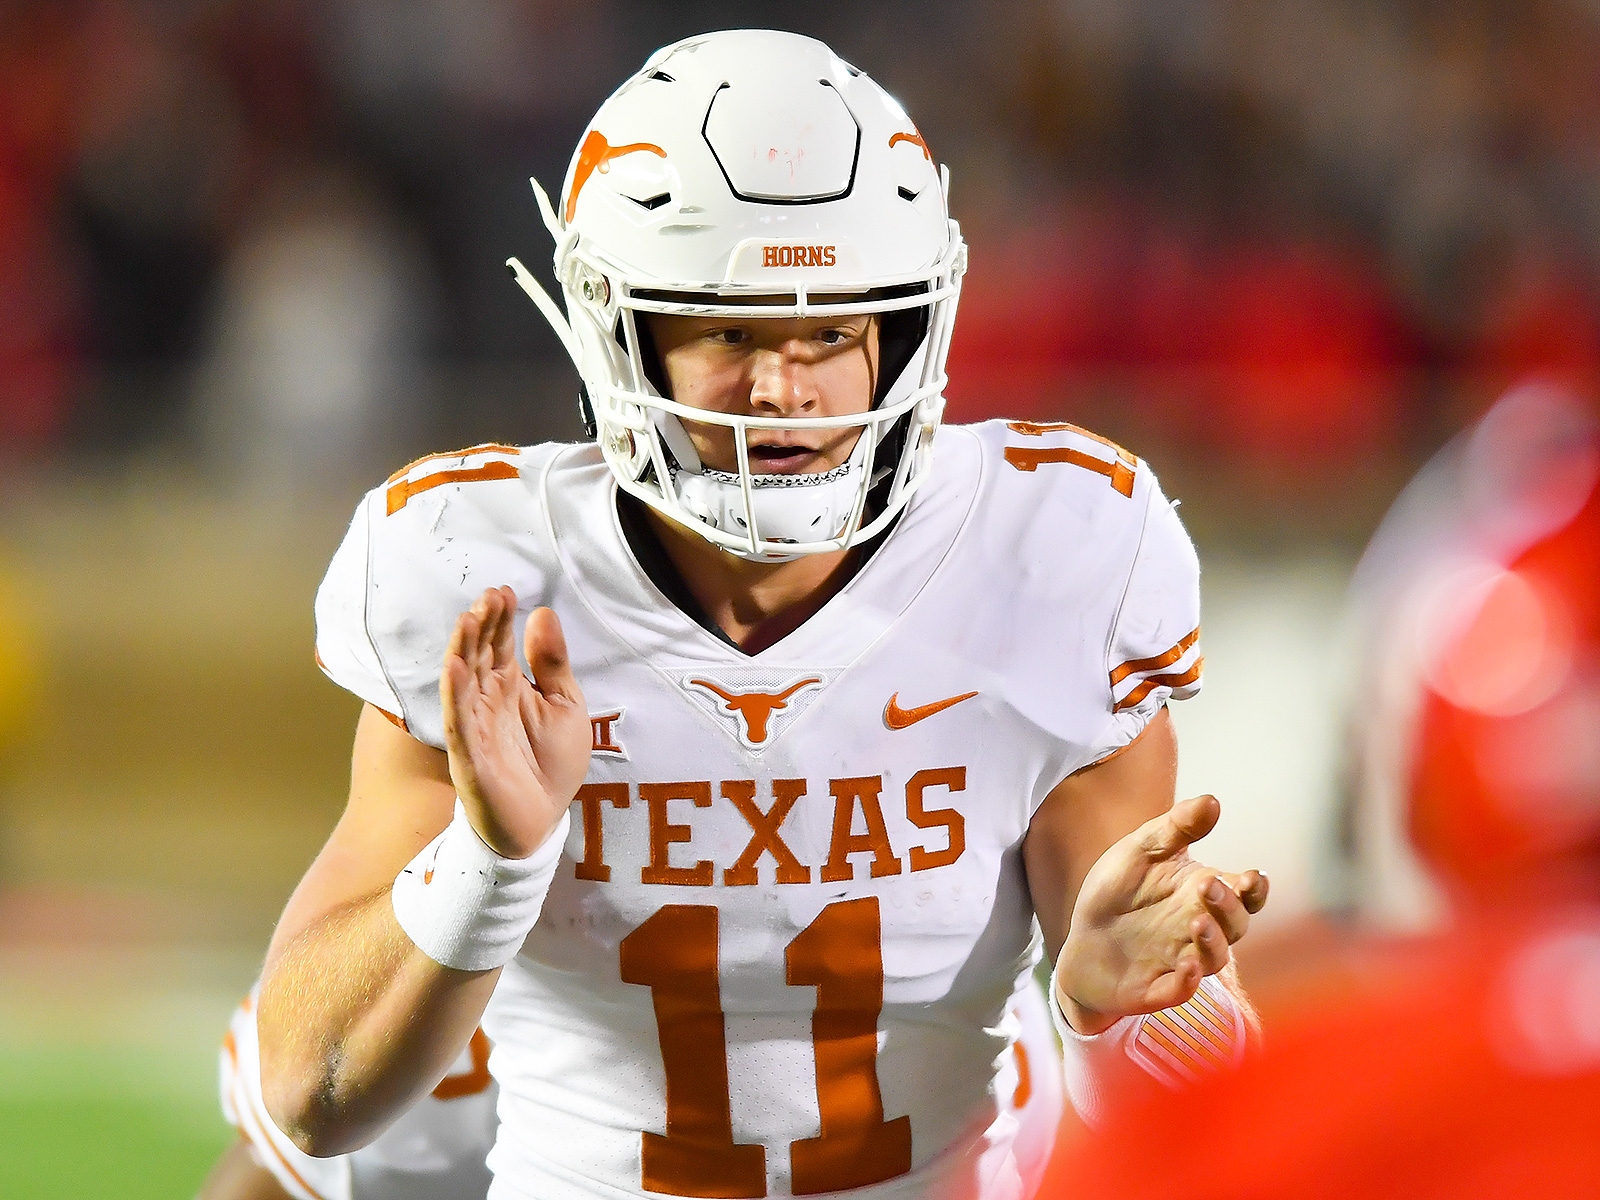 College football best players top 100 Texas Sam Ehlinger